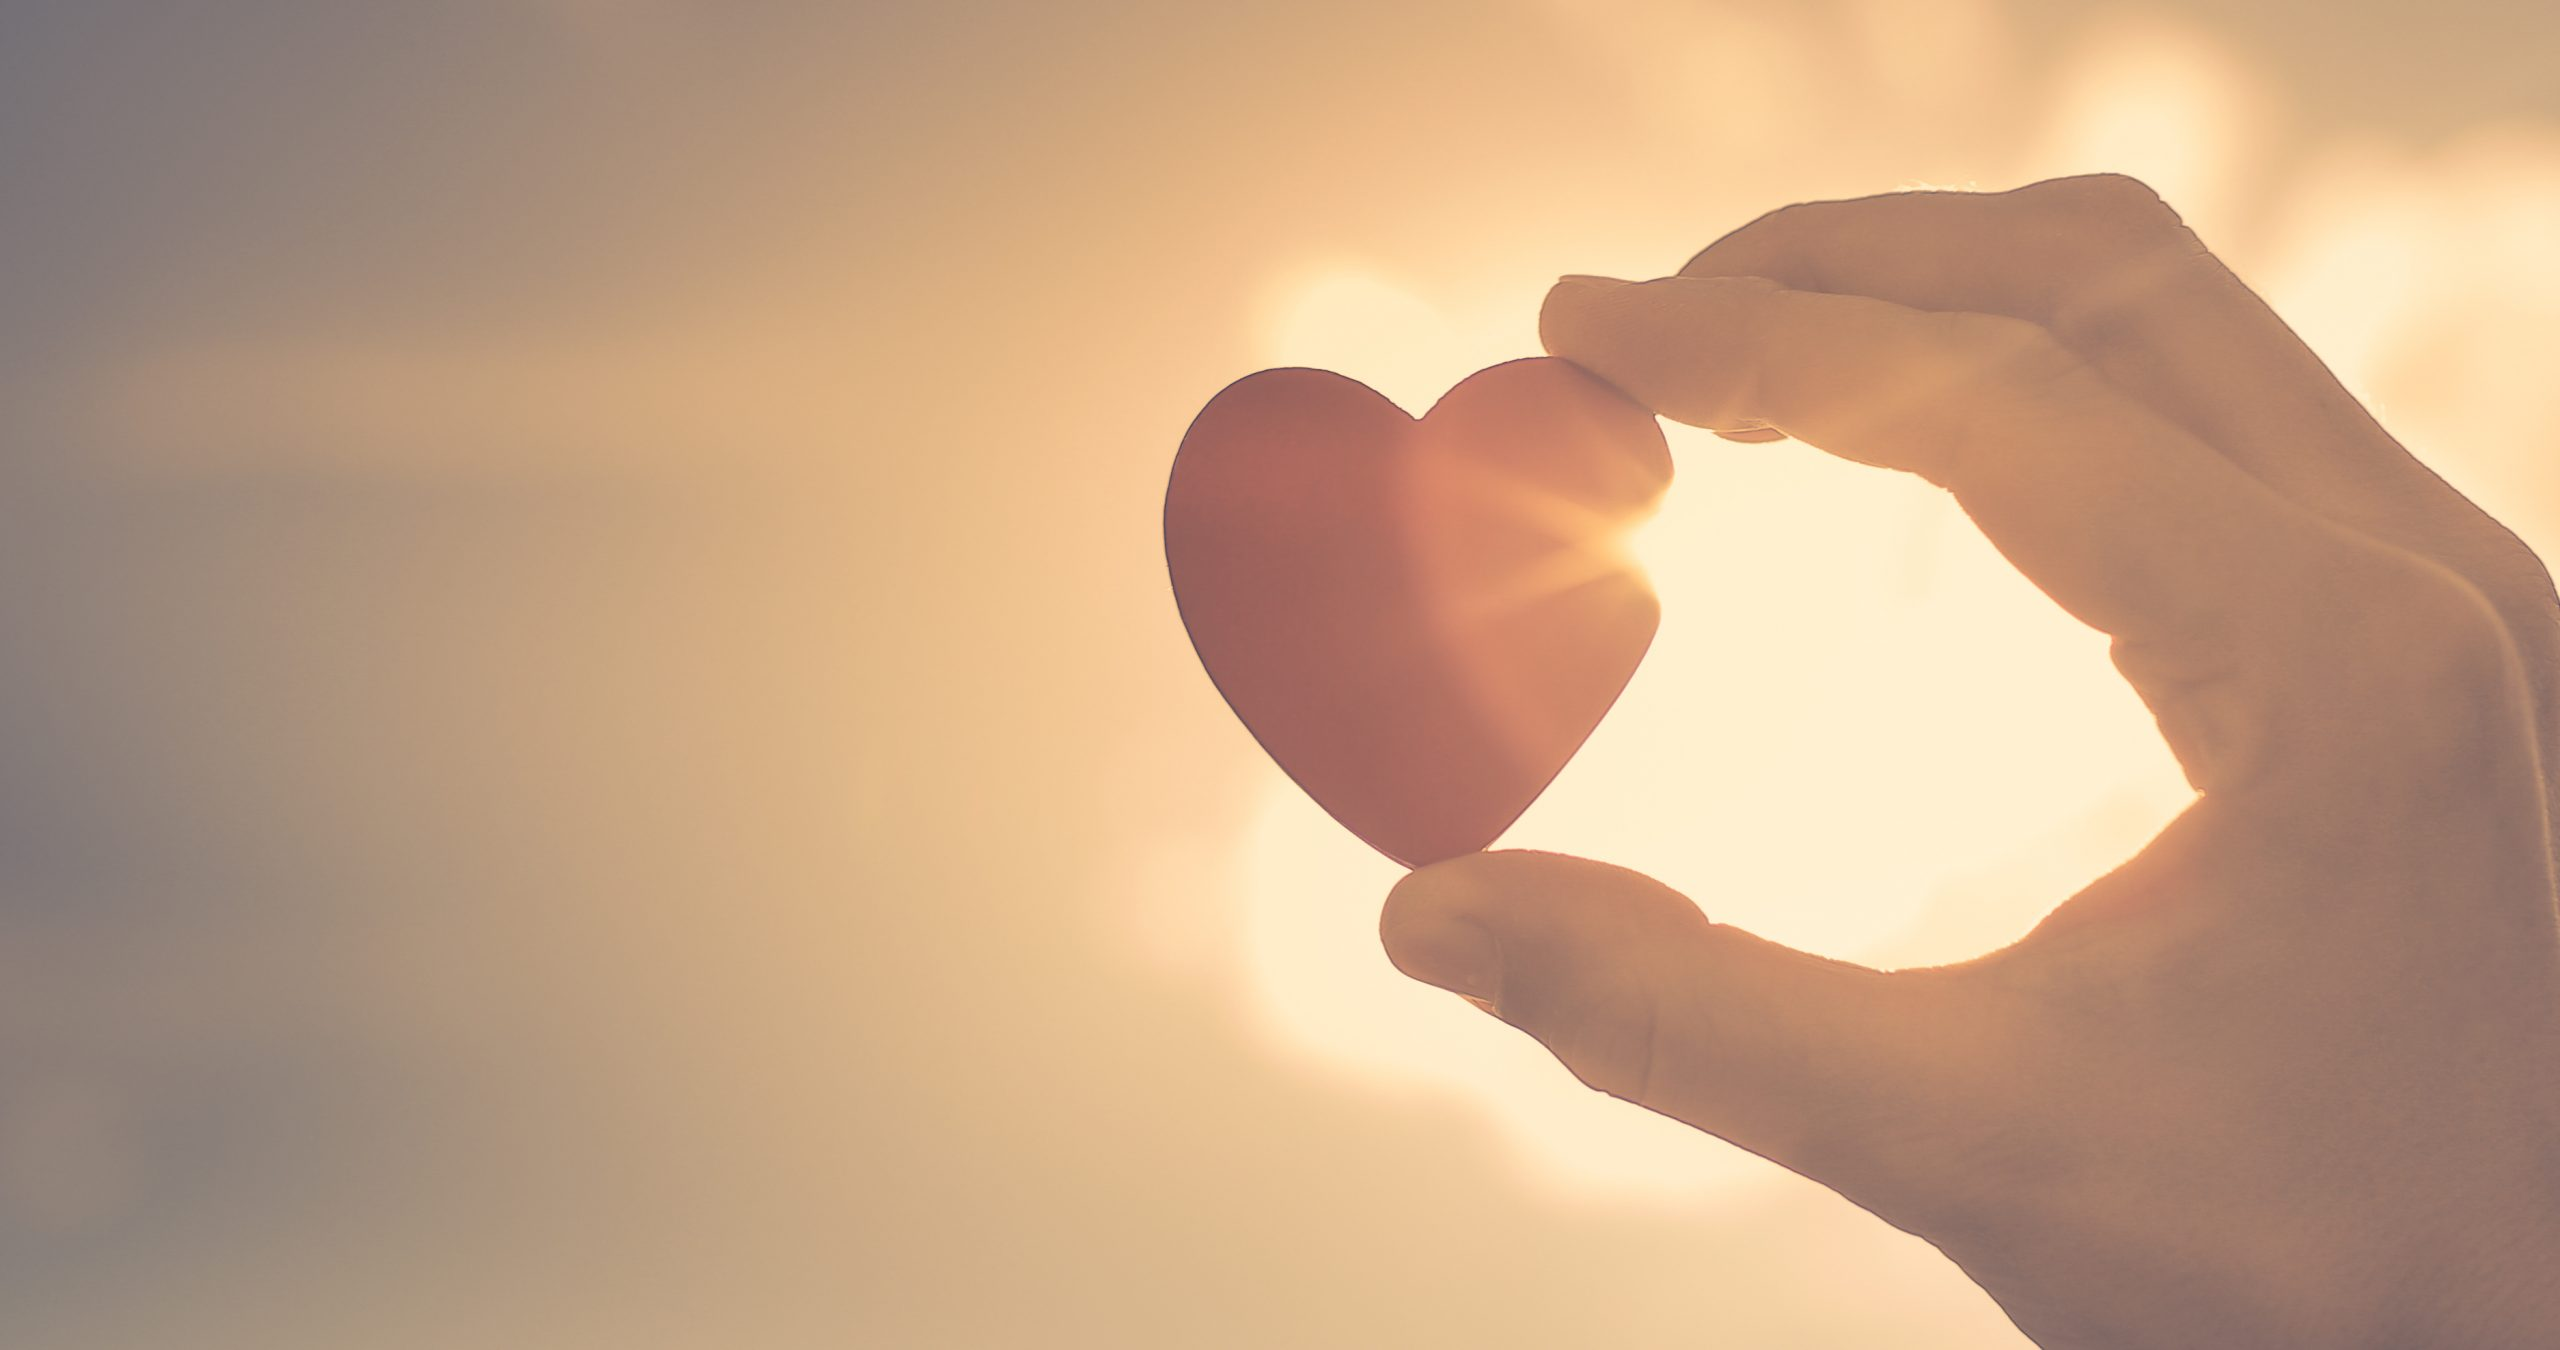 Image of a hand holding a heart during sunset representing self compassion as an autism parent. Begin online parent support group for Autism Parents in California with Open Doors Therapy